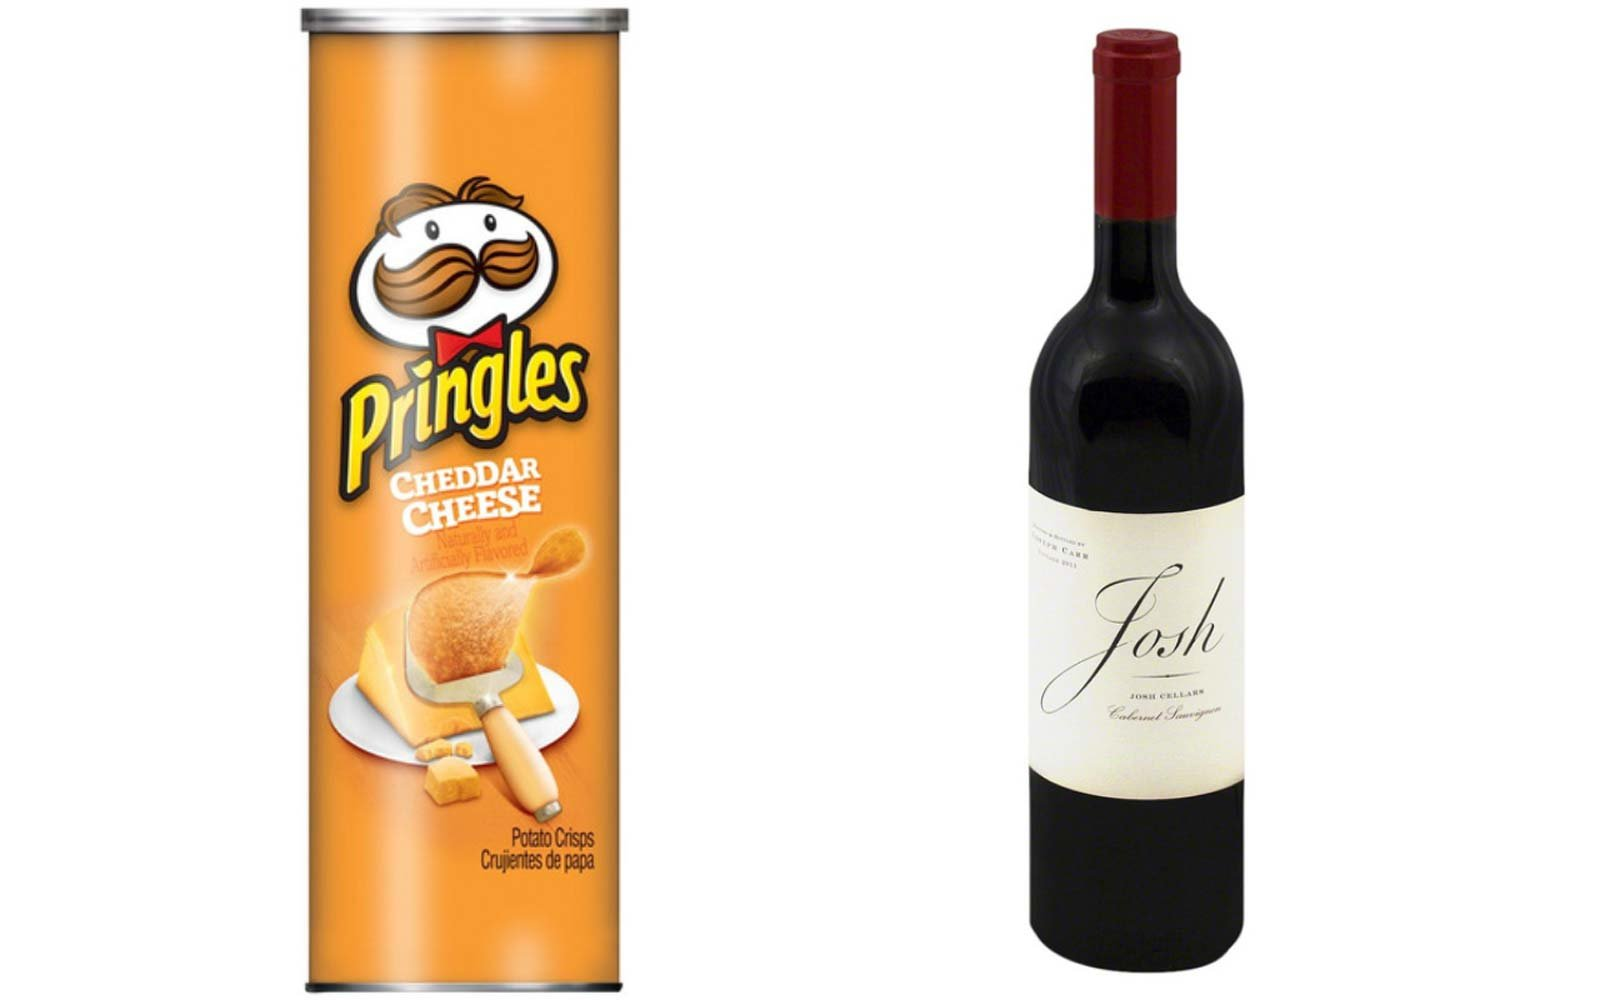 Pair Cheddar Pringles with Cabernet Sauvignon